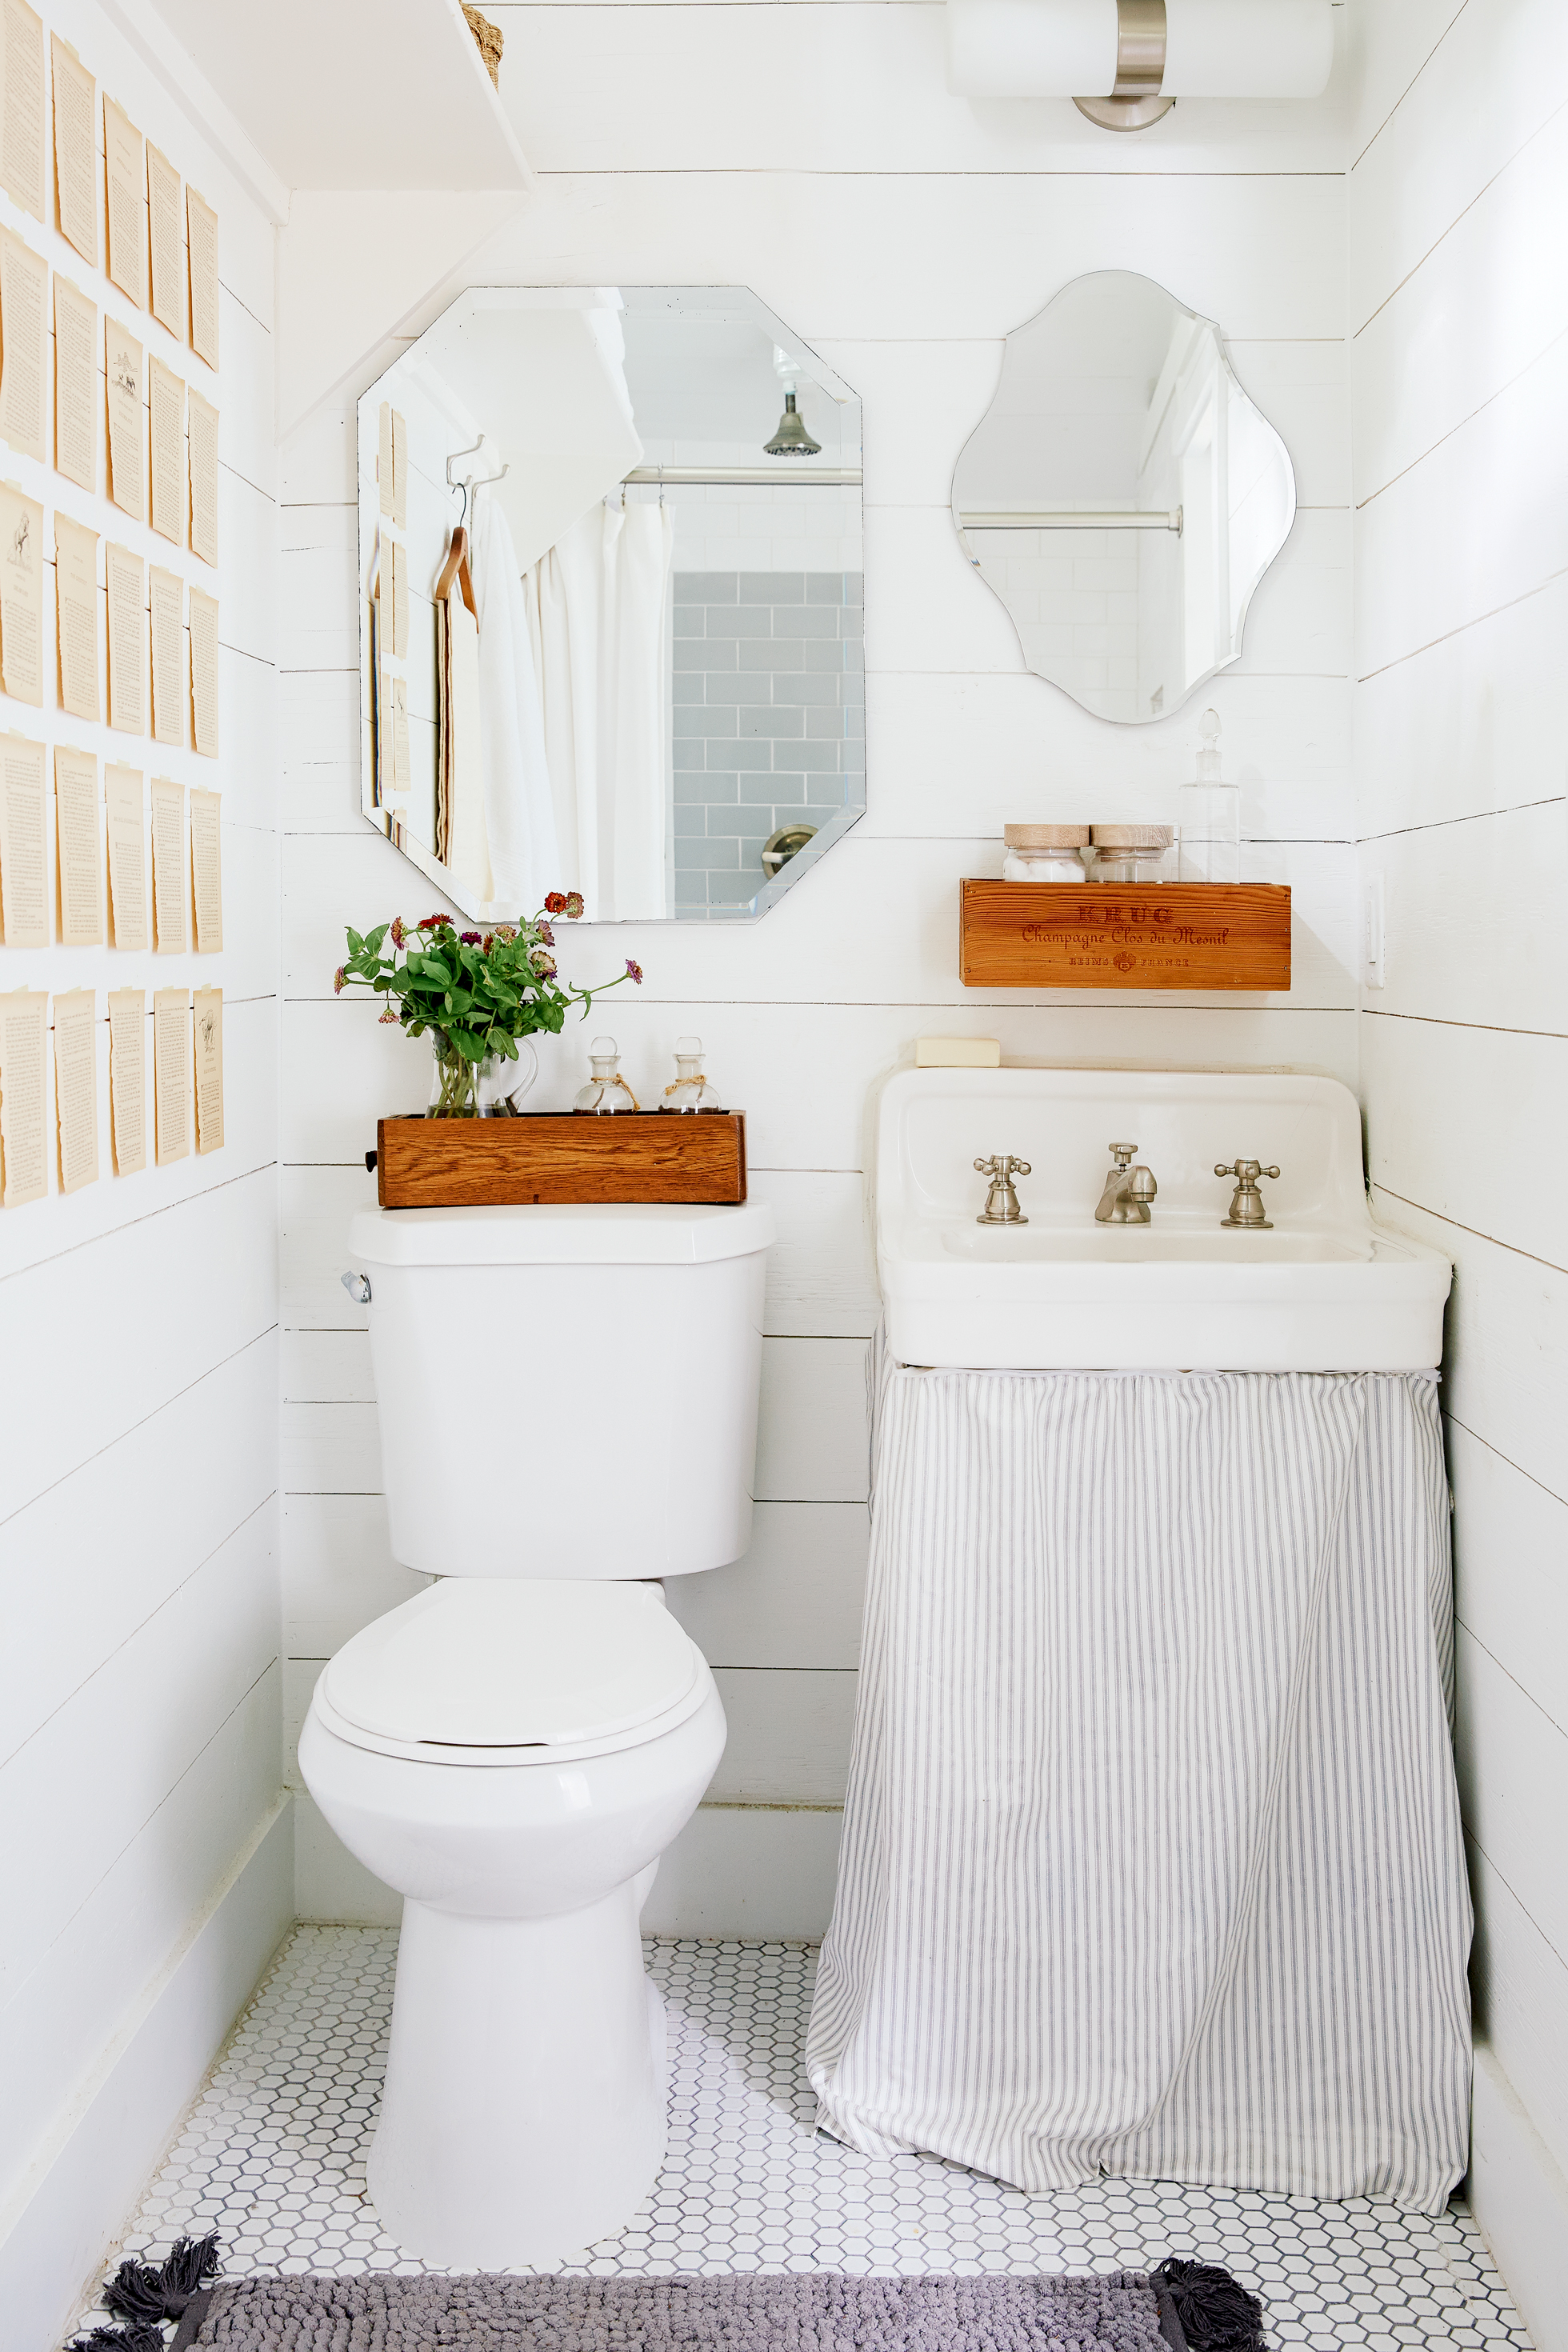 A cream-colored bathroom with a pedestal sink